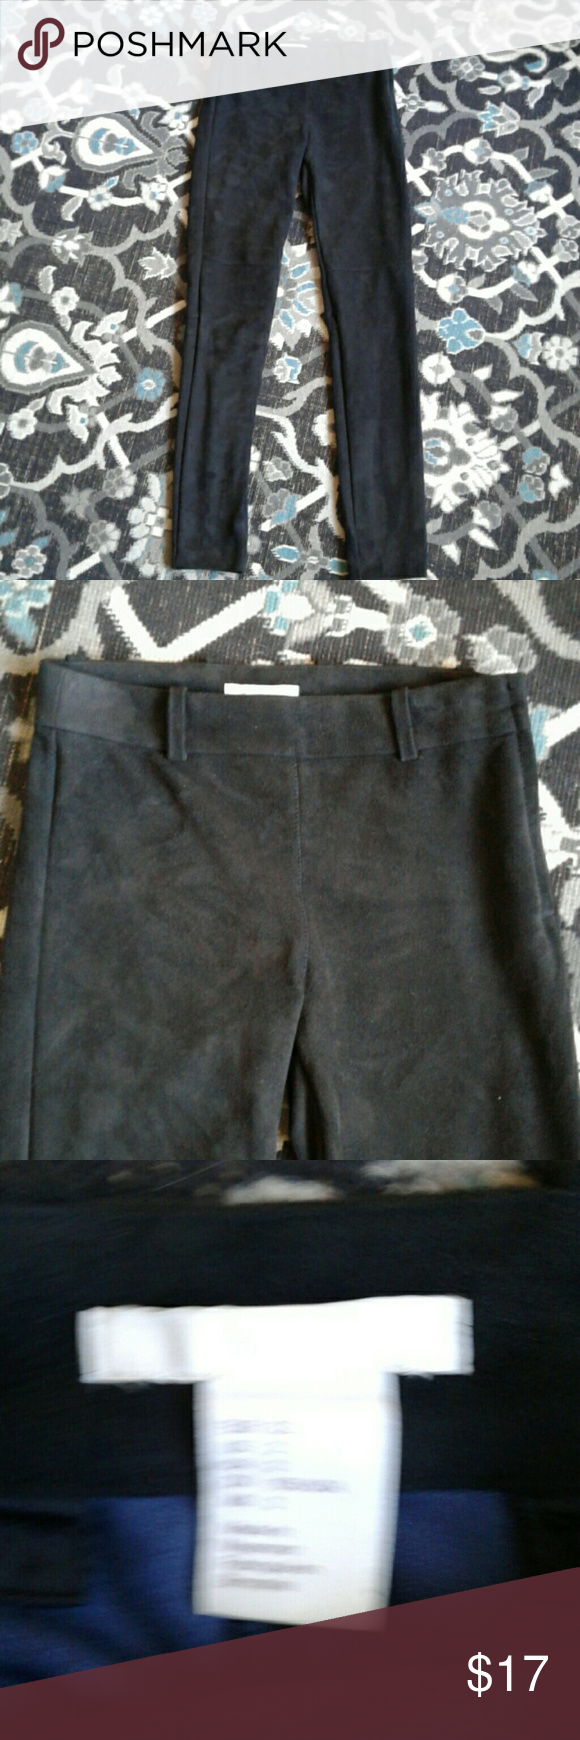 8d96b8d9f8a5f5 H&M black faux suede leggings 2 In excellent condition like New not lined  side zipper 94% polyester and 6% elastane inseam is 28